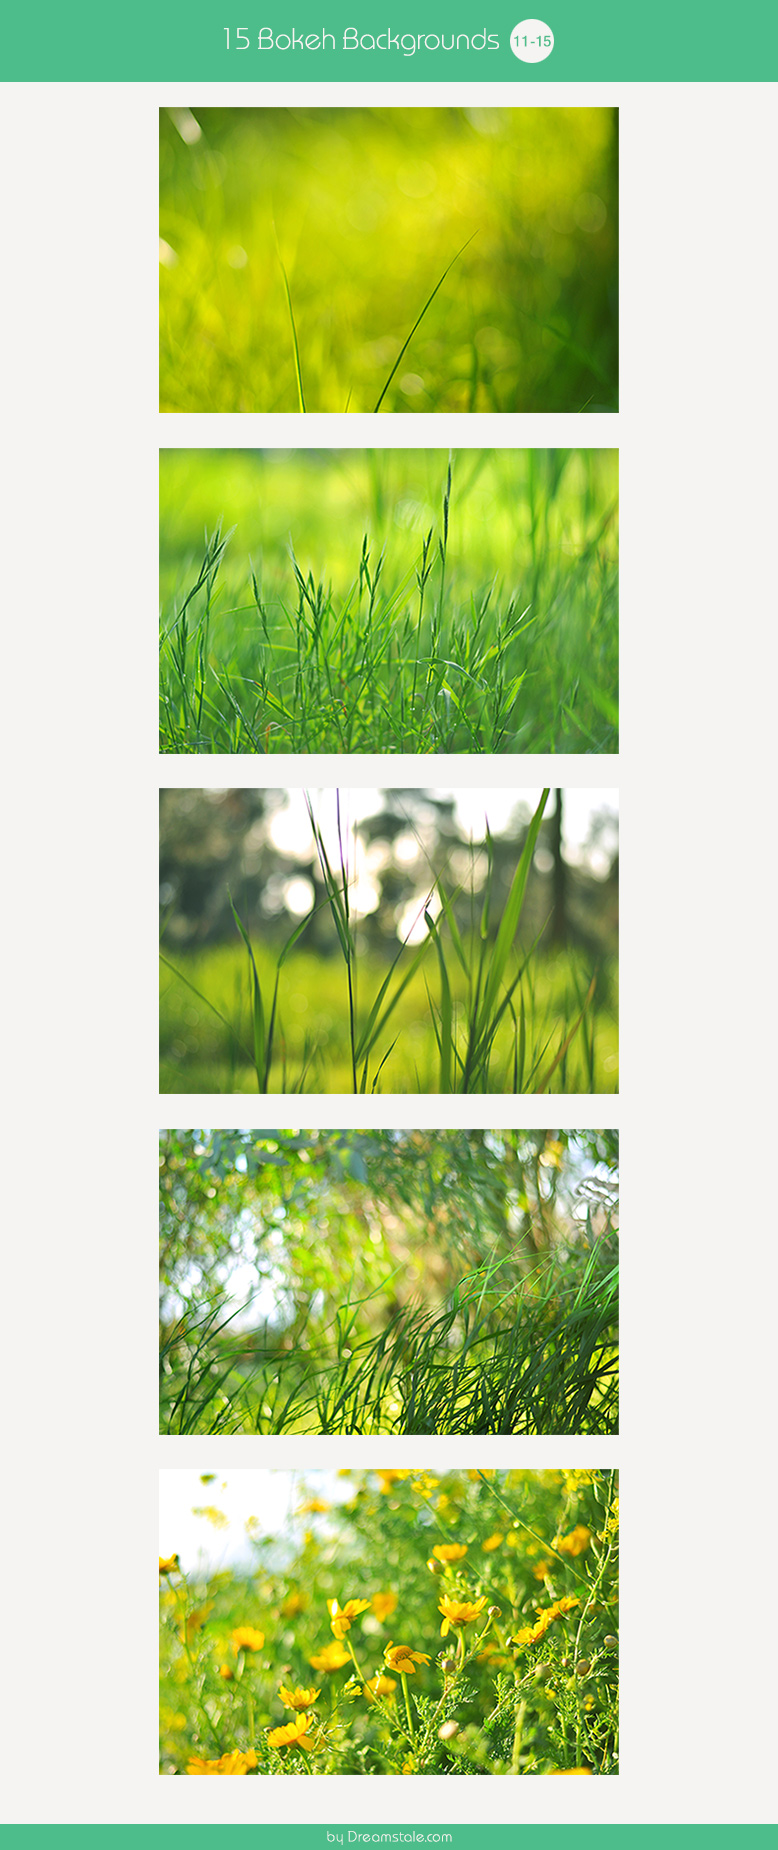 15-spring-bokeh-backgrounds-large-preview-11-15